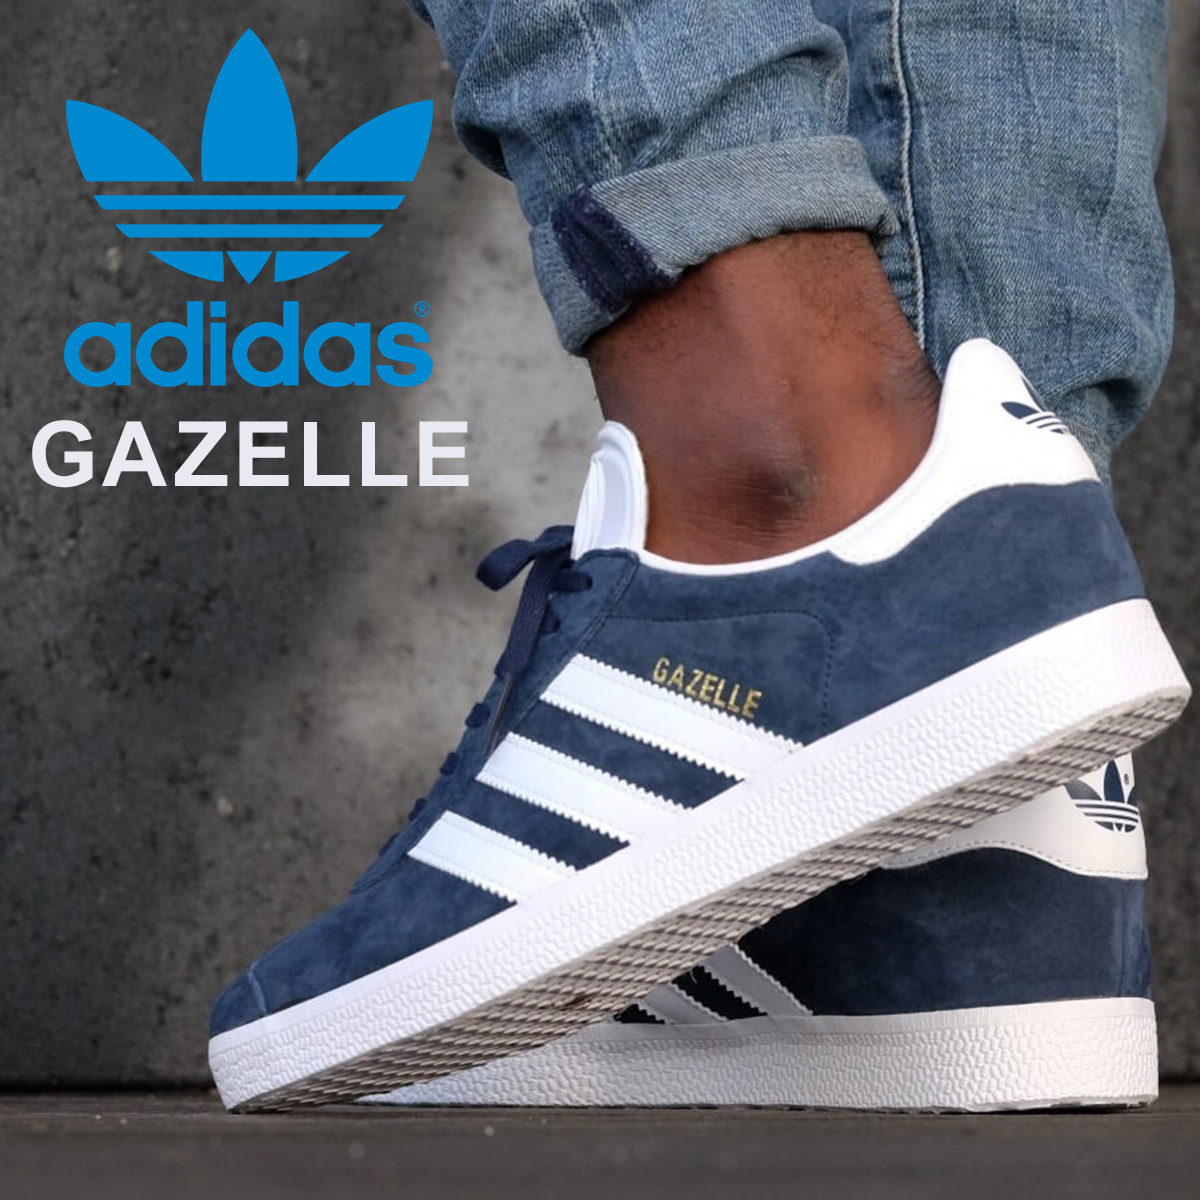 52d969cf33d6 Adidas originals gazelle adidas Originals スニーカーガッツレー GAZELLE men gap Dis  BB5478 navy  load planned Shinnyu load in reservation product 6 26 ...